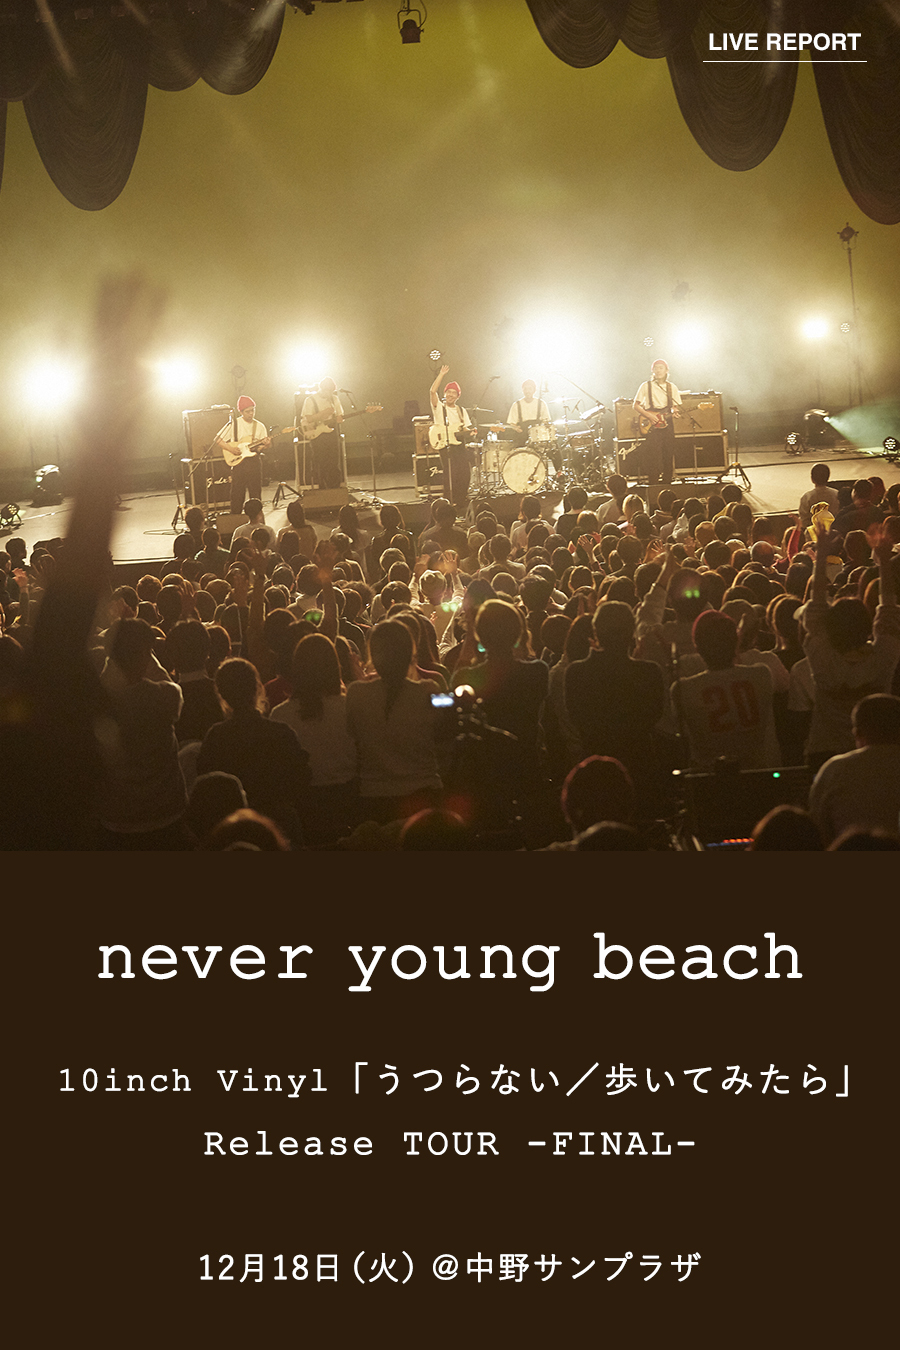 【SP】LIVE REPORT11 never young beach